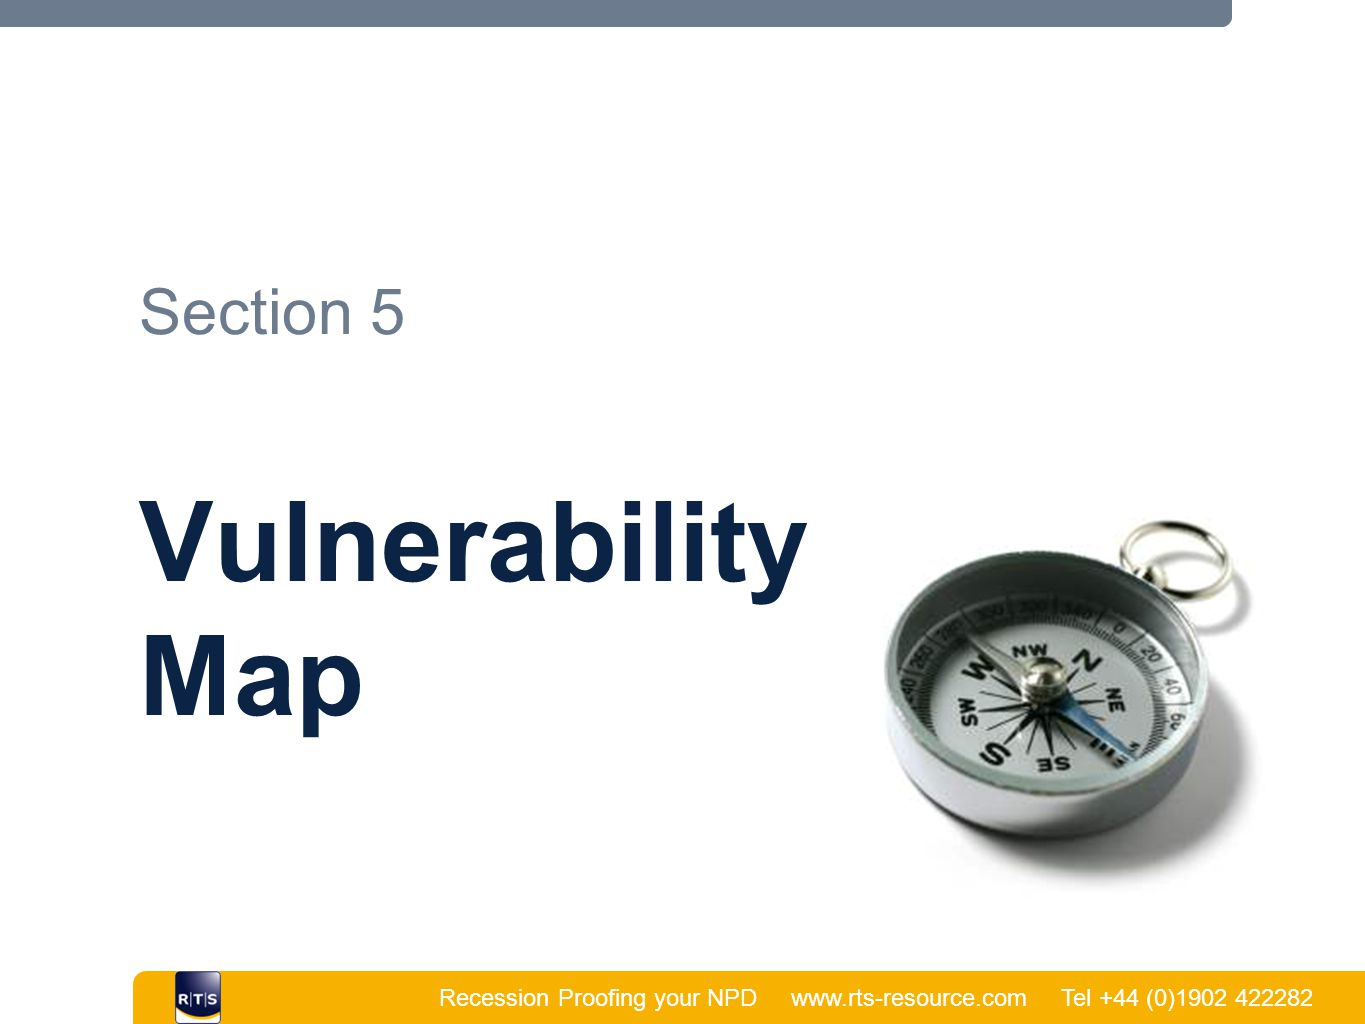 Recession Proofing your NPD www.rts-resource.com Tel +44 (0)1902 422282   Section 5 Vulnerability Map